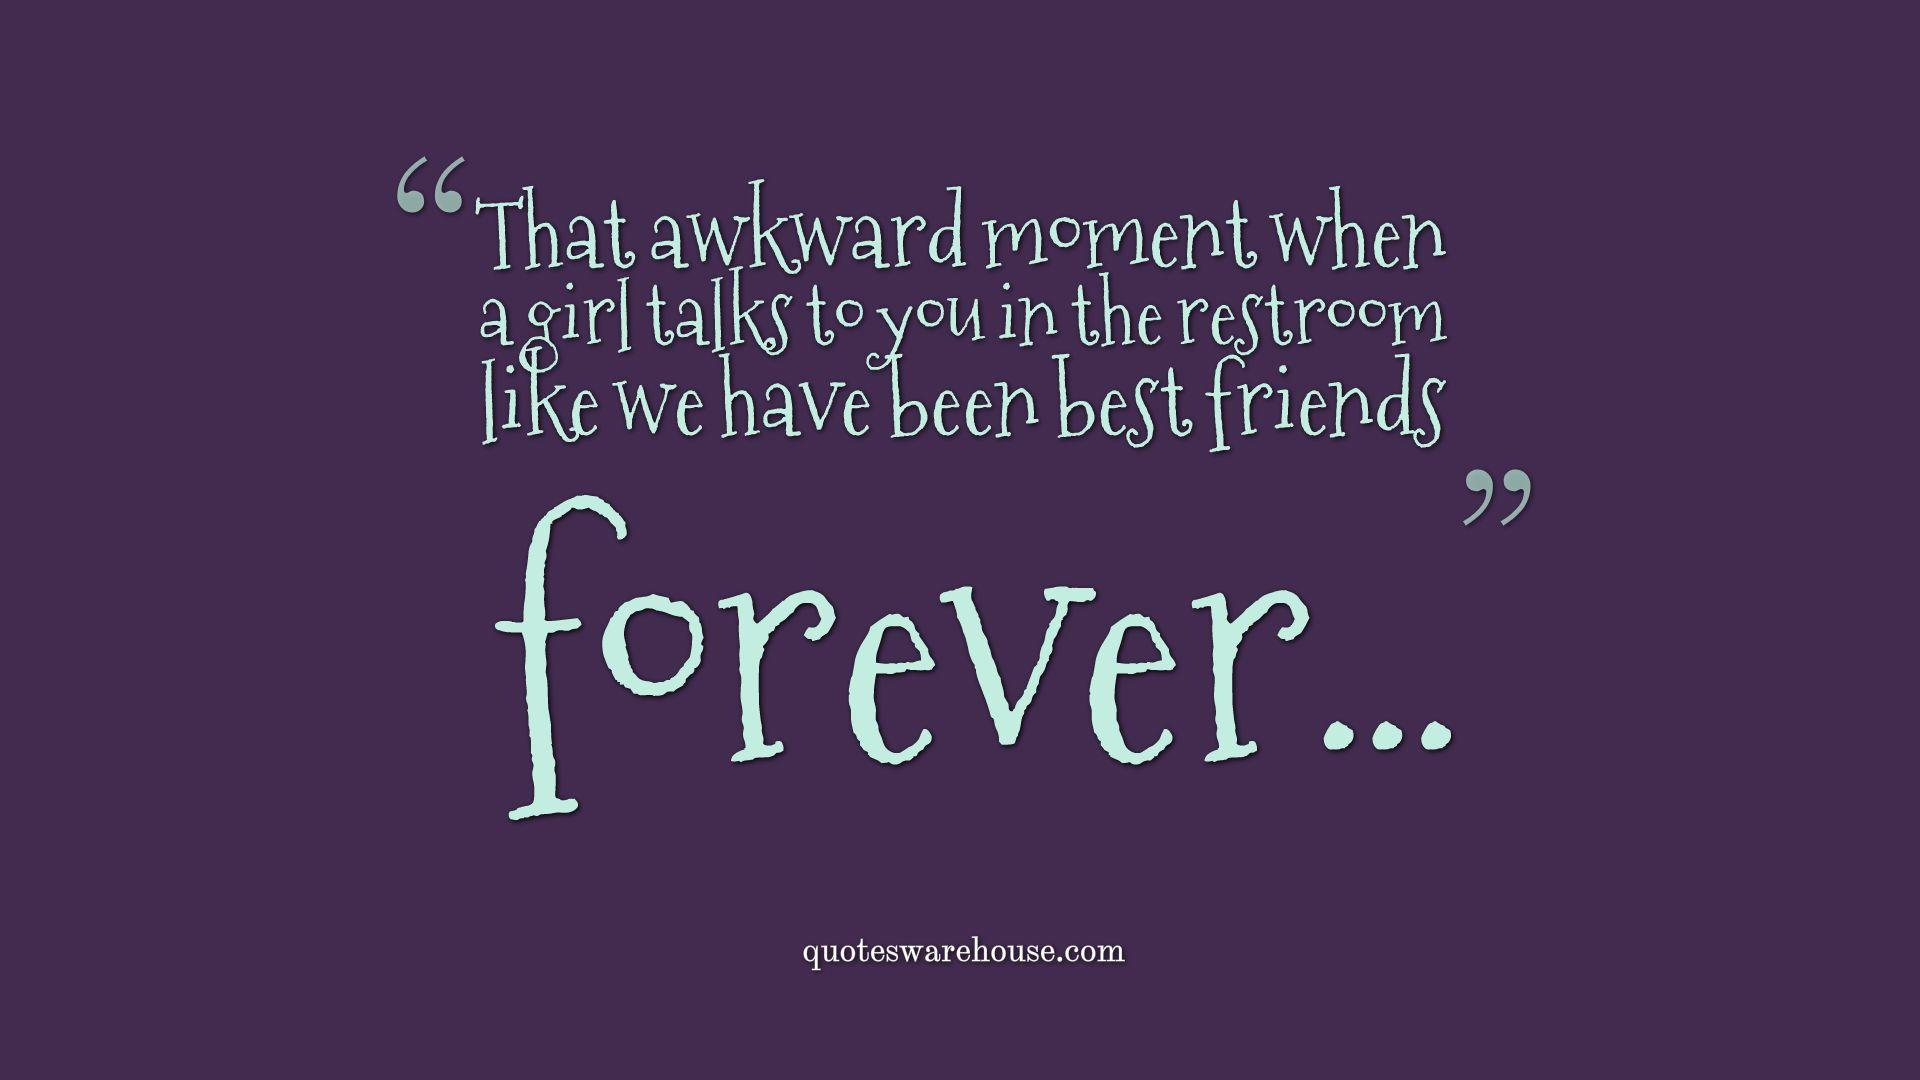 Best Friend Quotes Wallpapers - Wallpaper CaveQuotes About Three Best Friends Forever